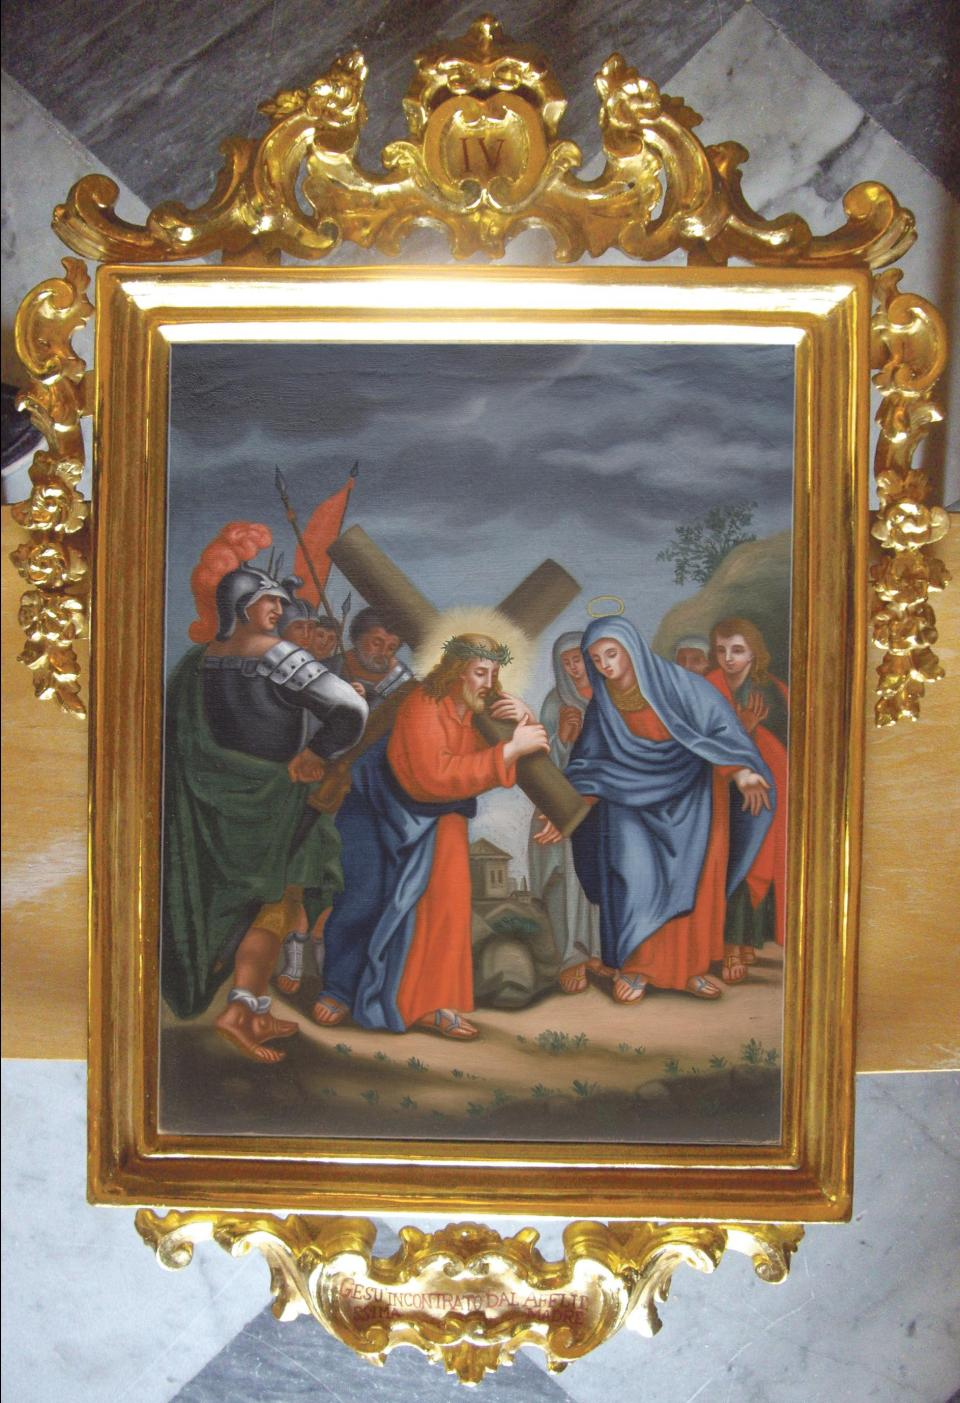 A fully-restored painting with its carved, gilded frame